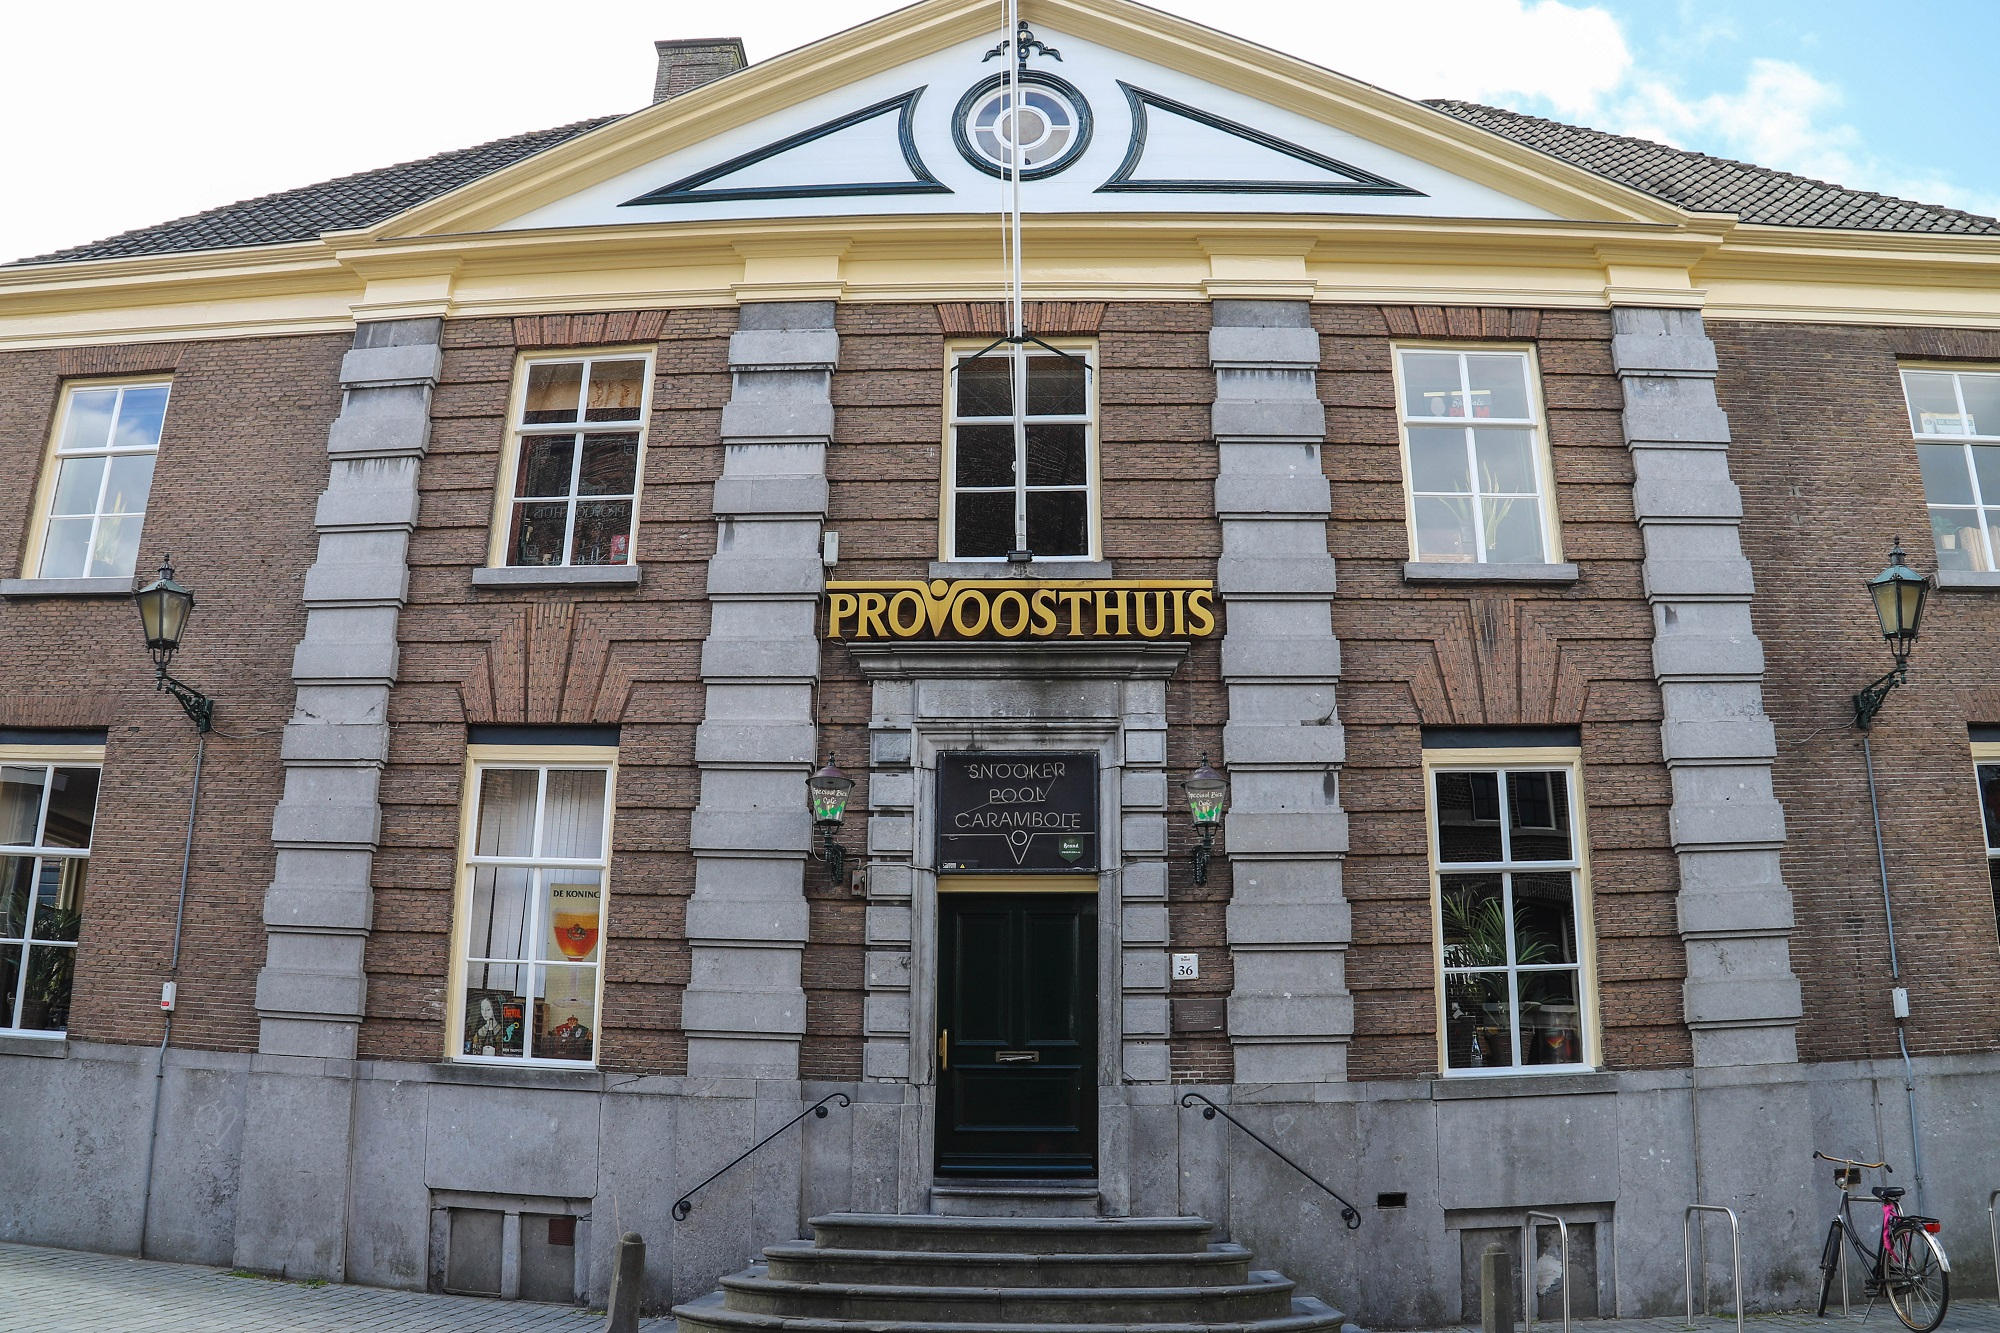 cafe café provoosthuis provoost potterstraat speciaabier